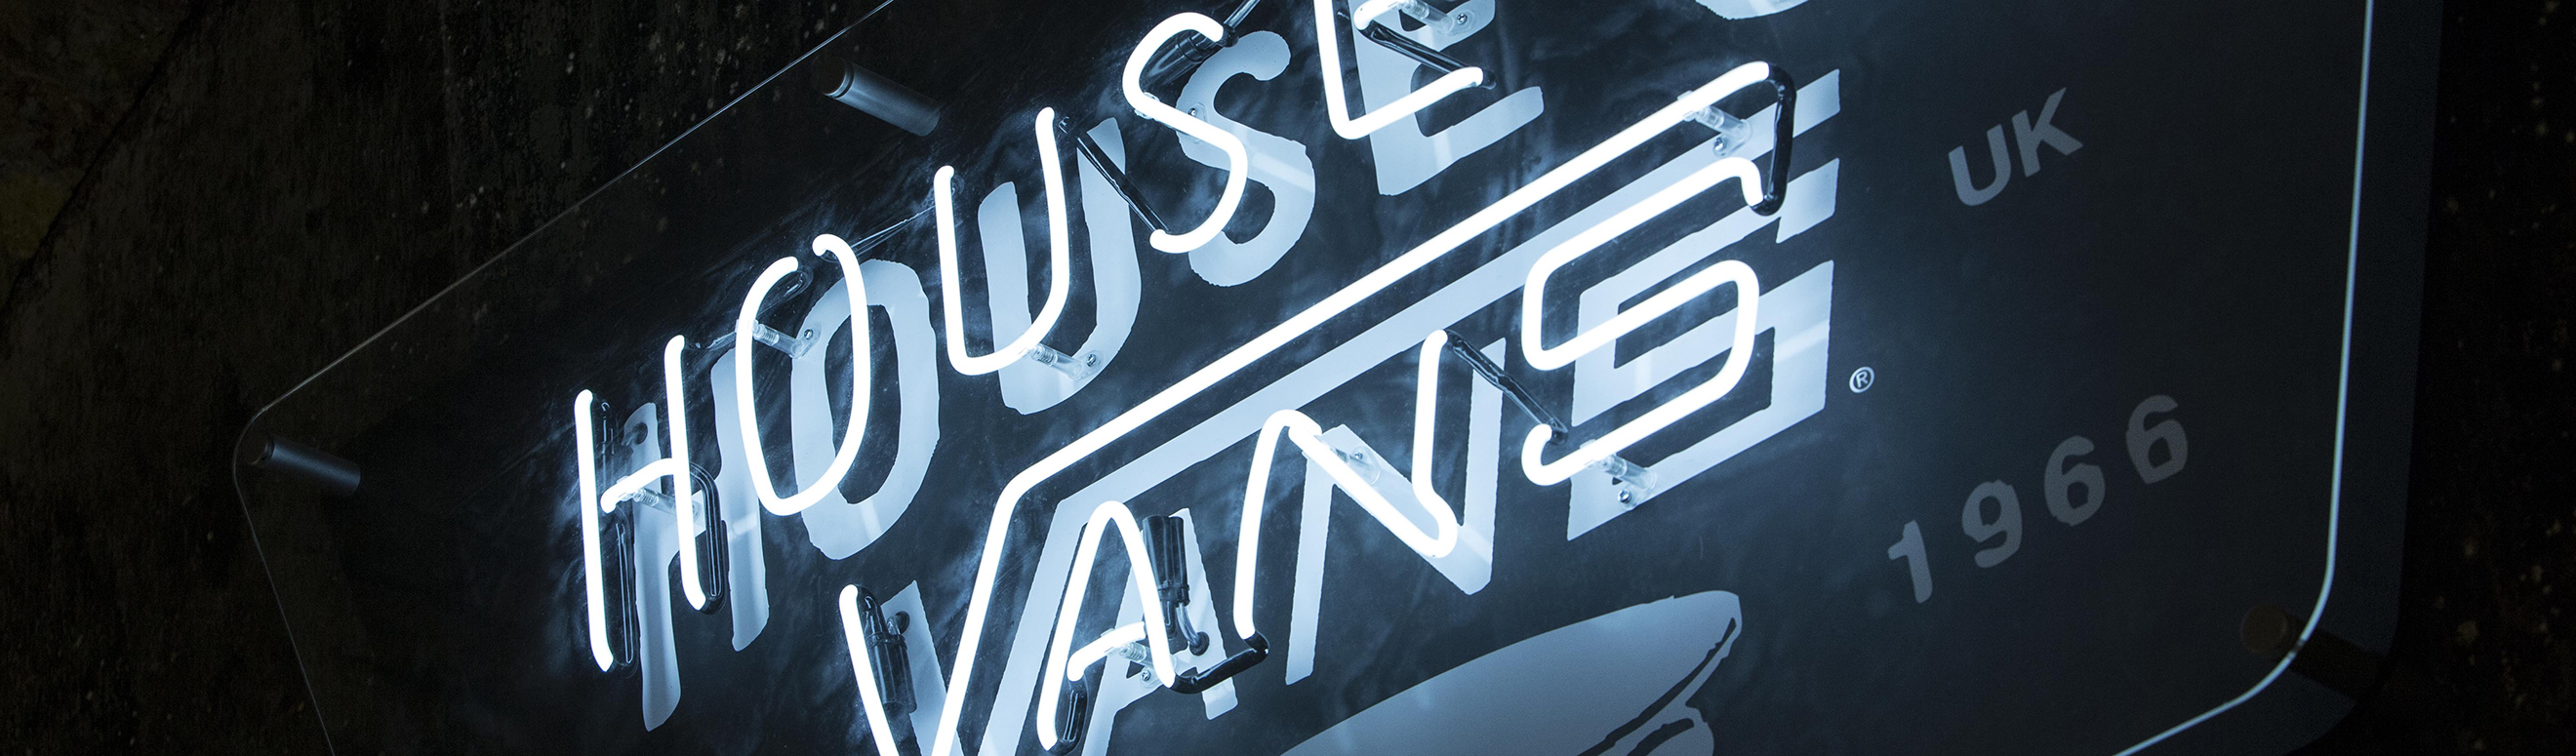 House of Vans skateboarding neon signage